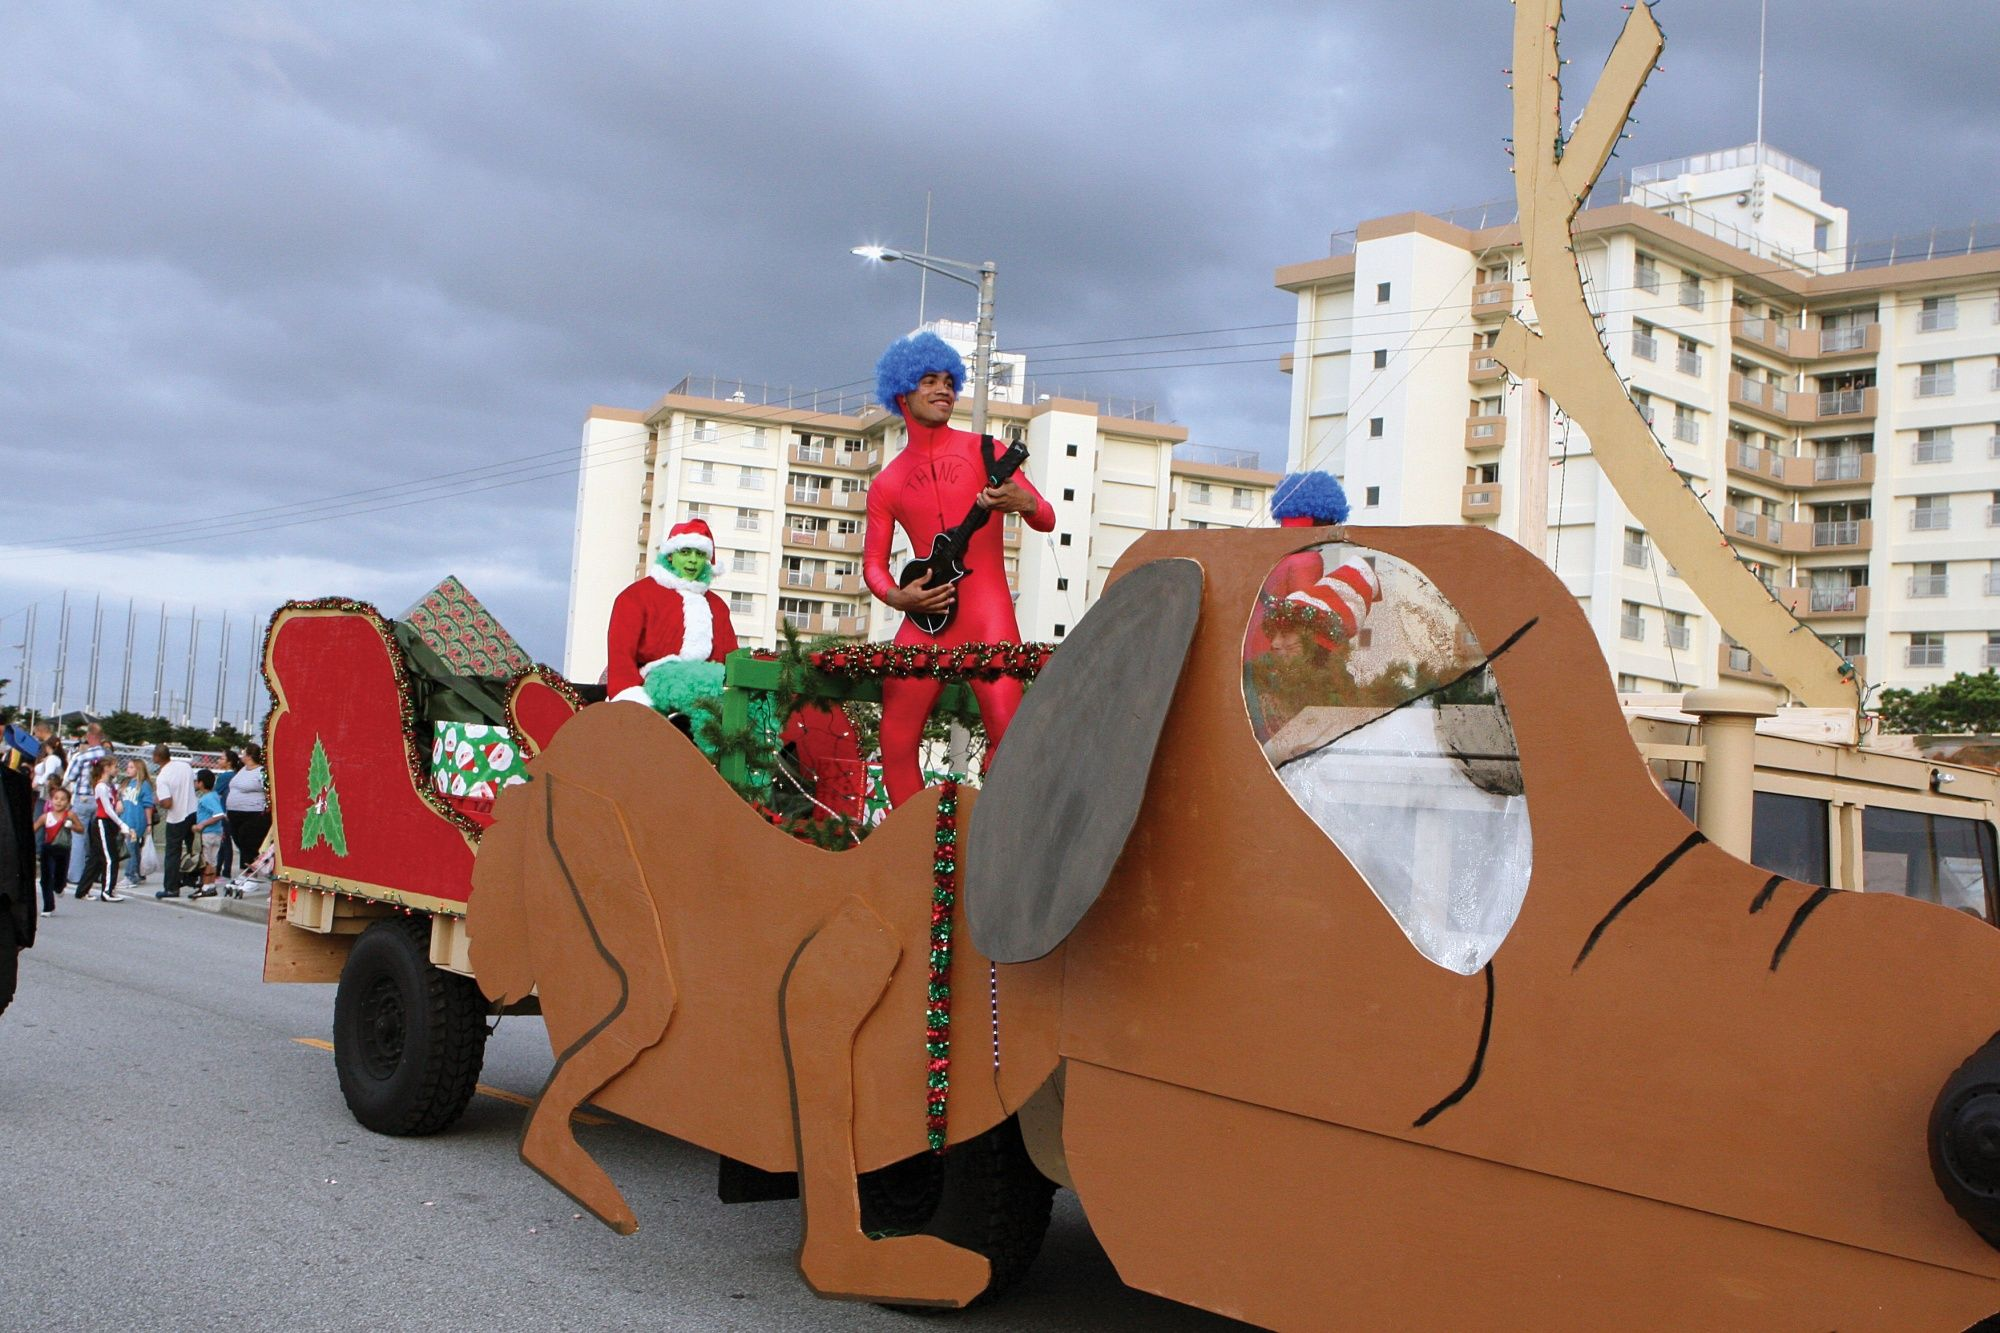 grinch stole christmas parade float - Google Search | Float ideas ...